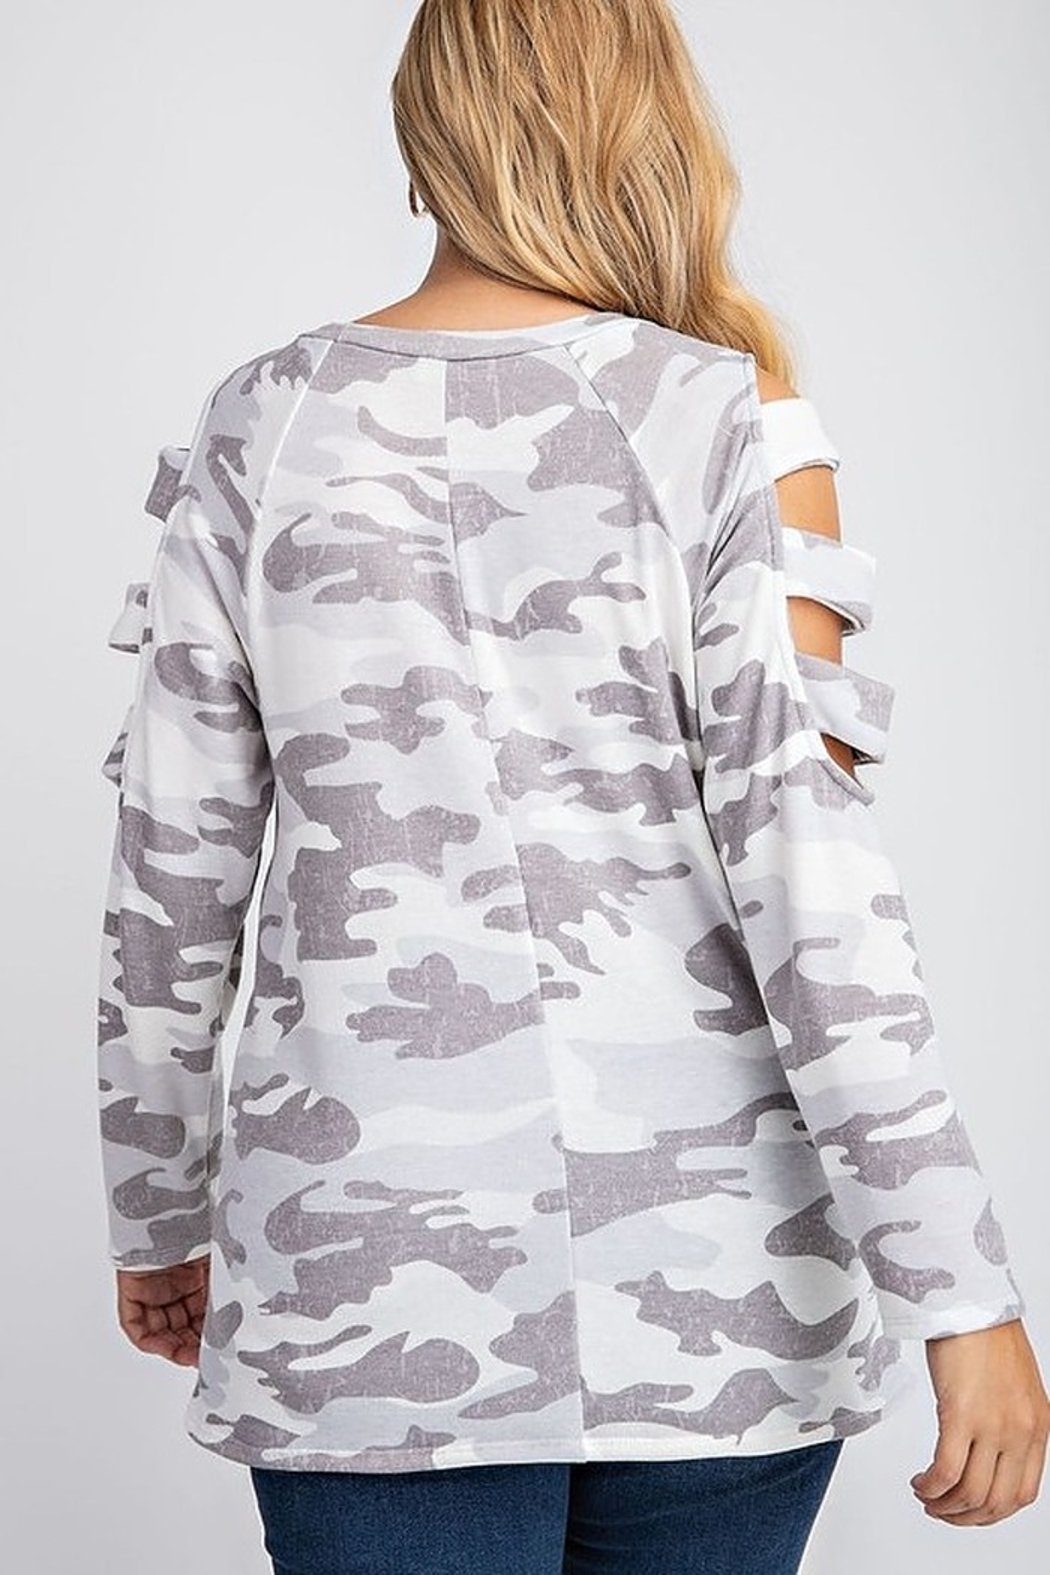 143 Story BRUSHED CAMO PRINT TOP - Back Cropped Image